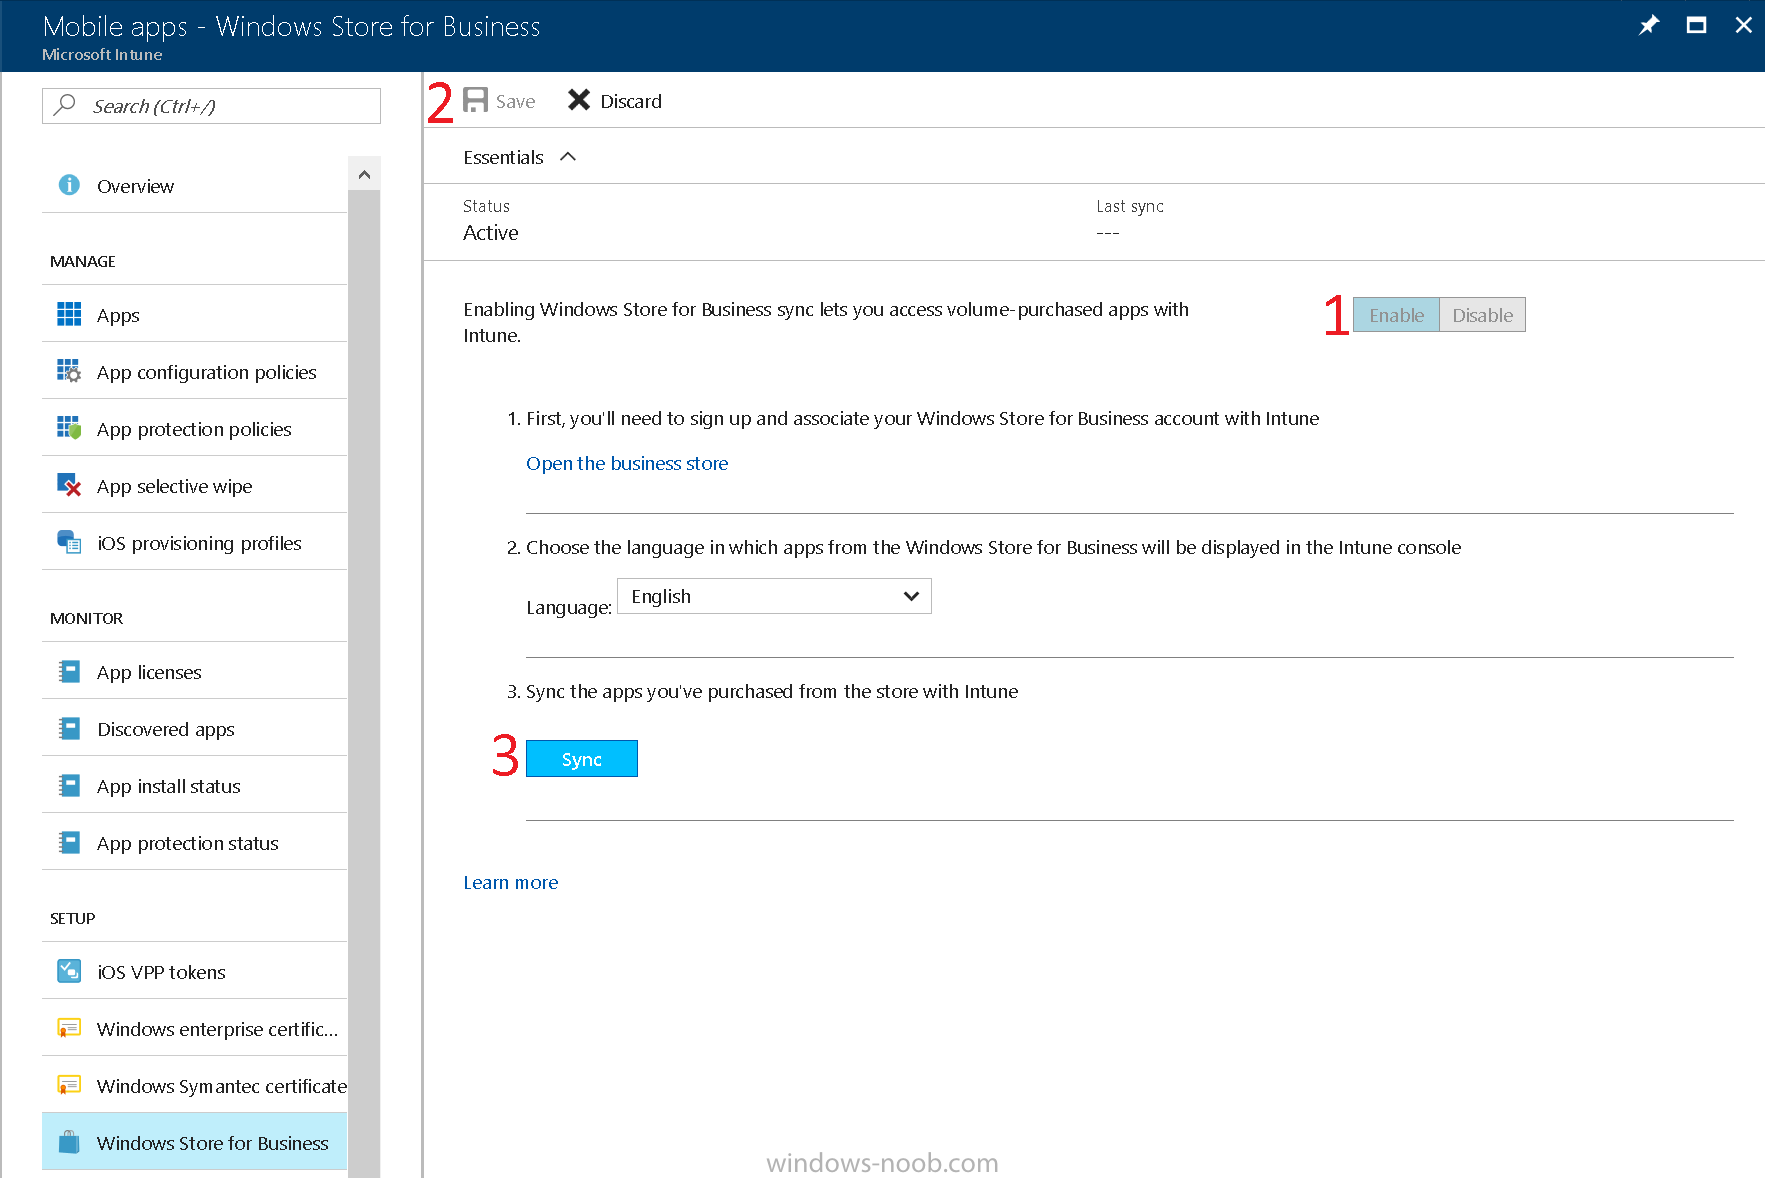 How can I integrate Microsoft Store for Business with Intune